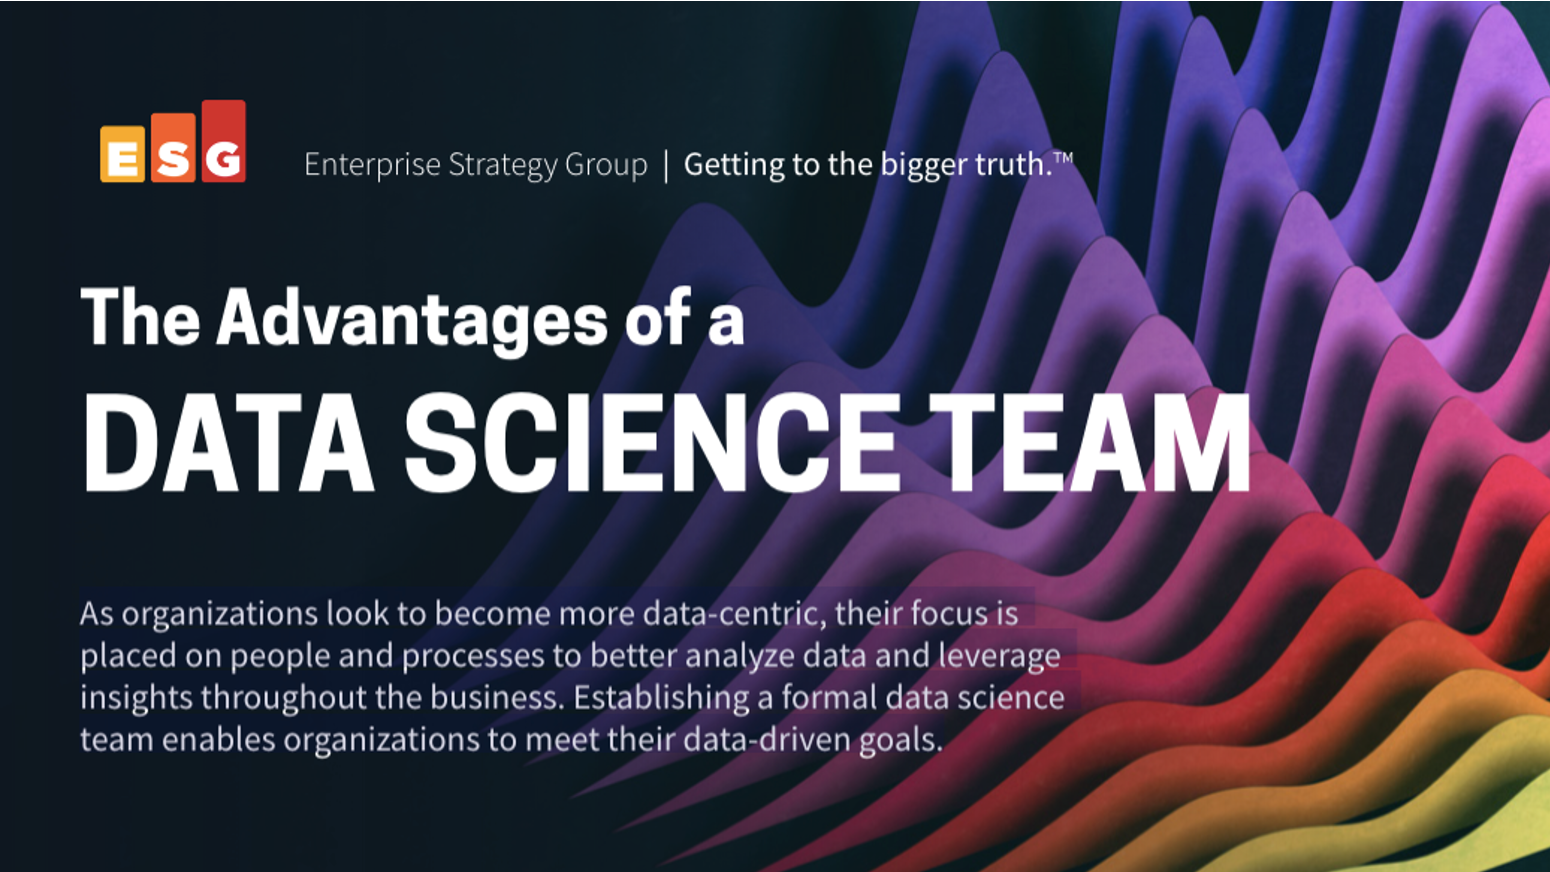 ESG Infographic: The Advantages of a Data Science Team